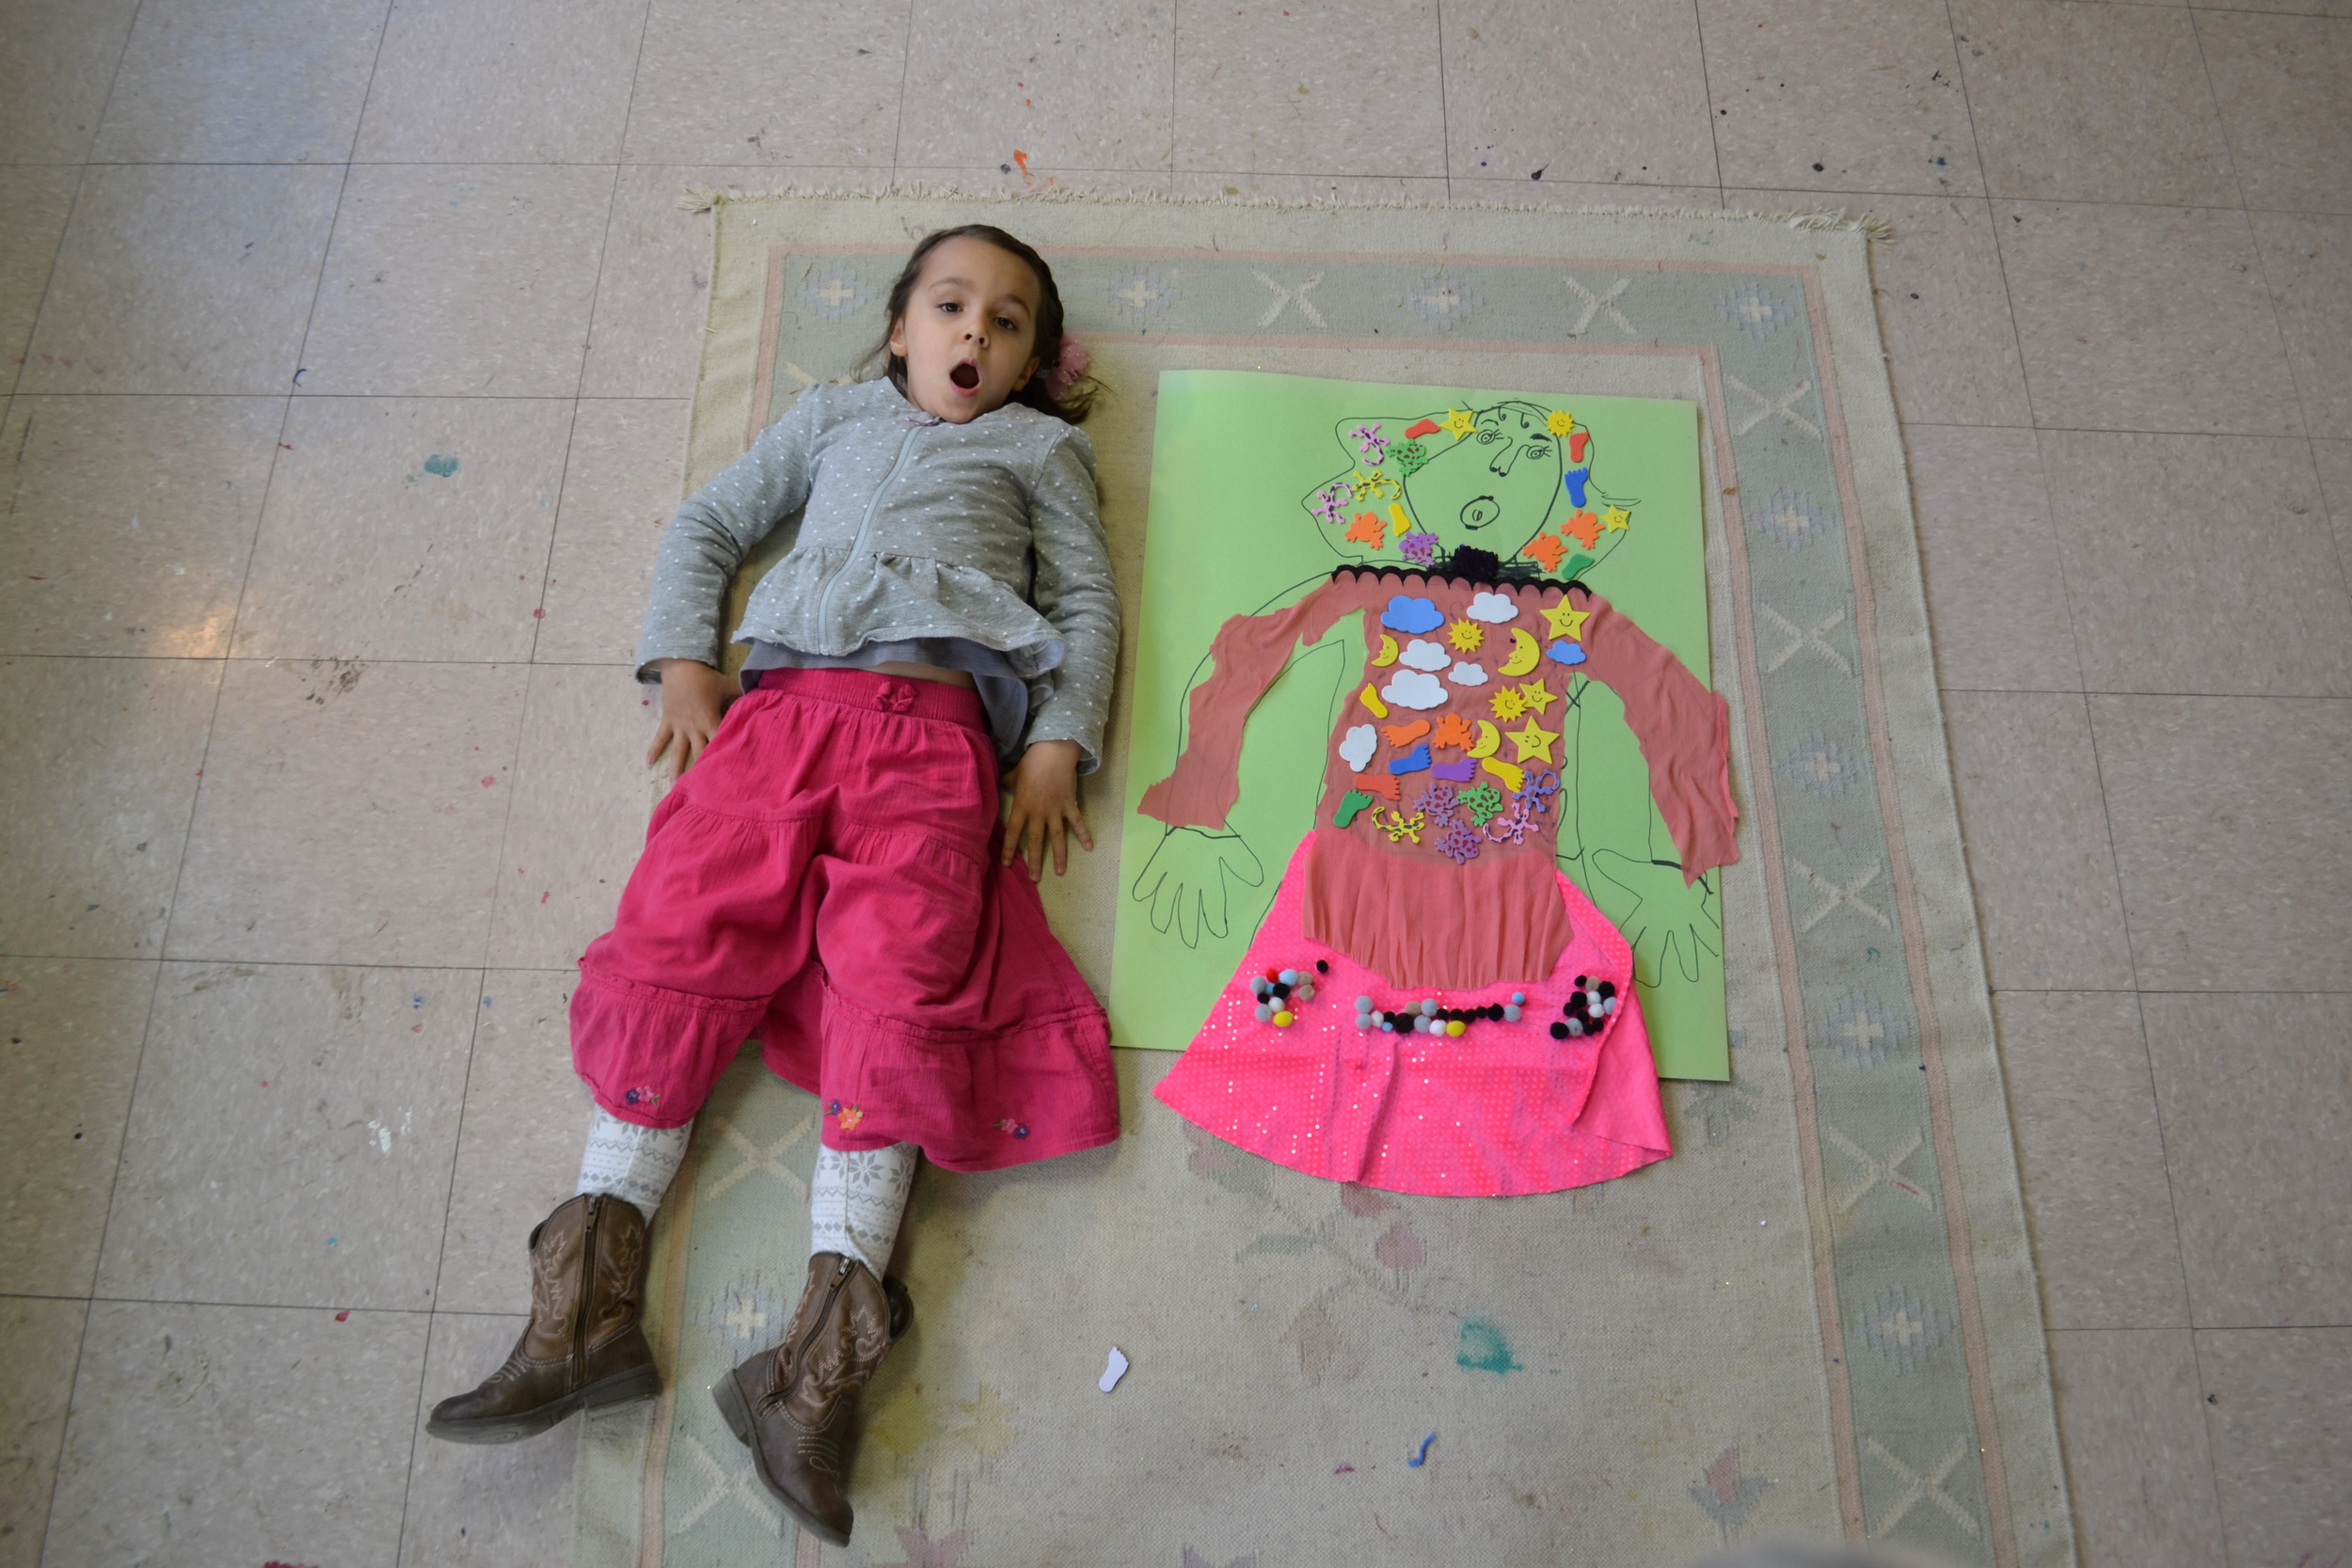 Aoloni mimics her self portrait on the floor